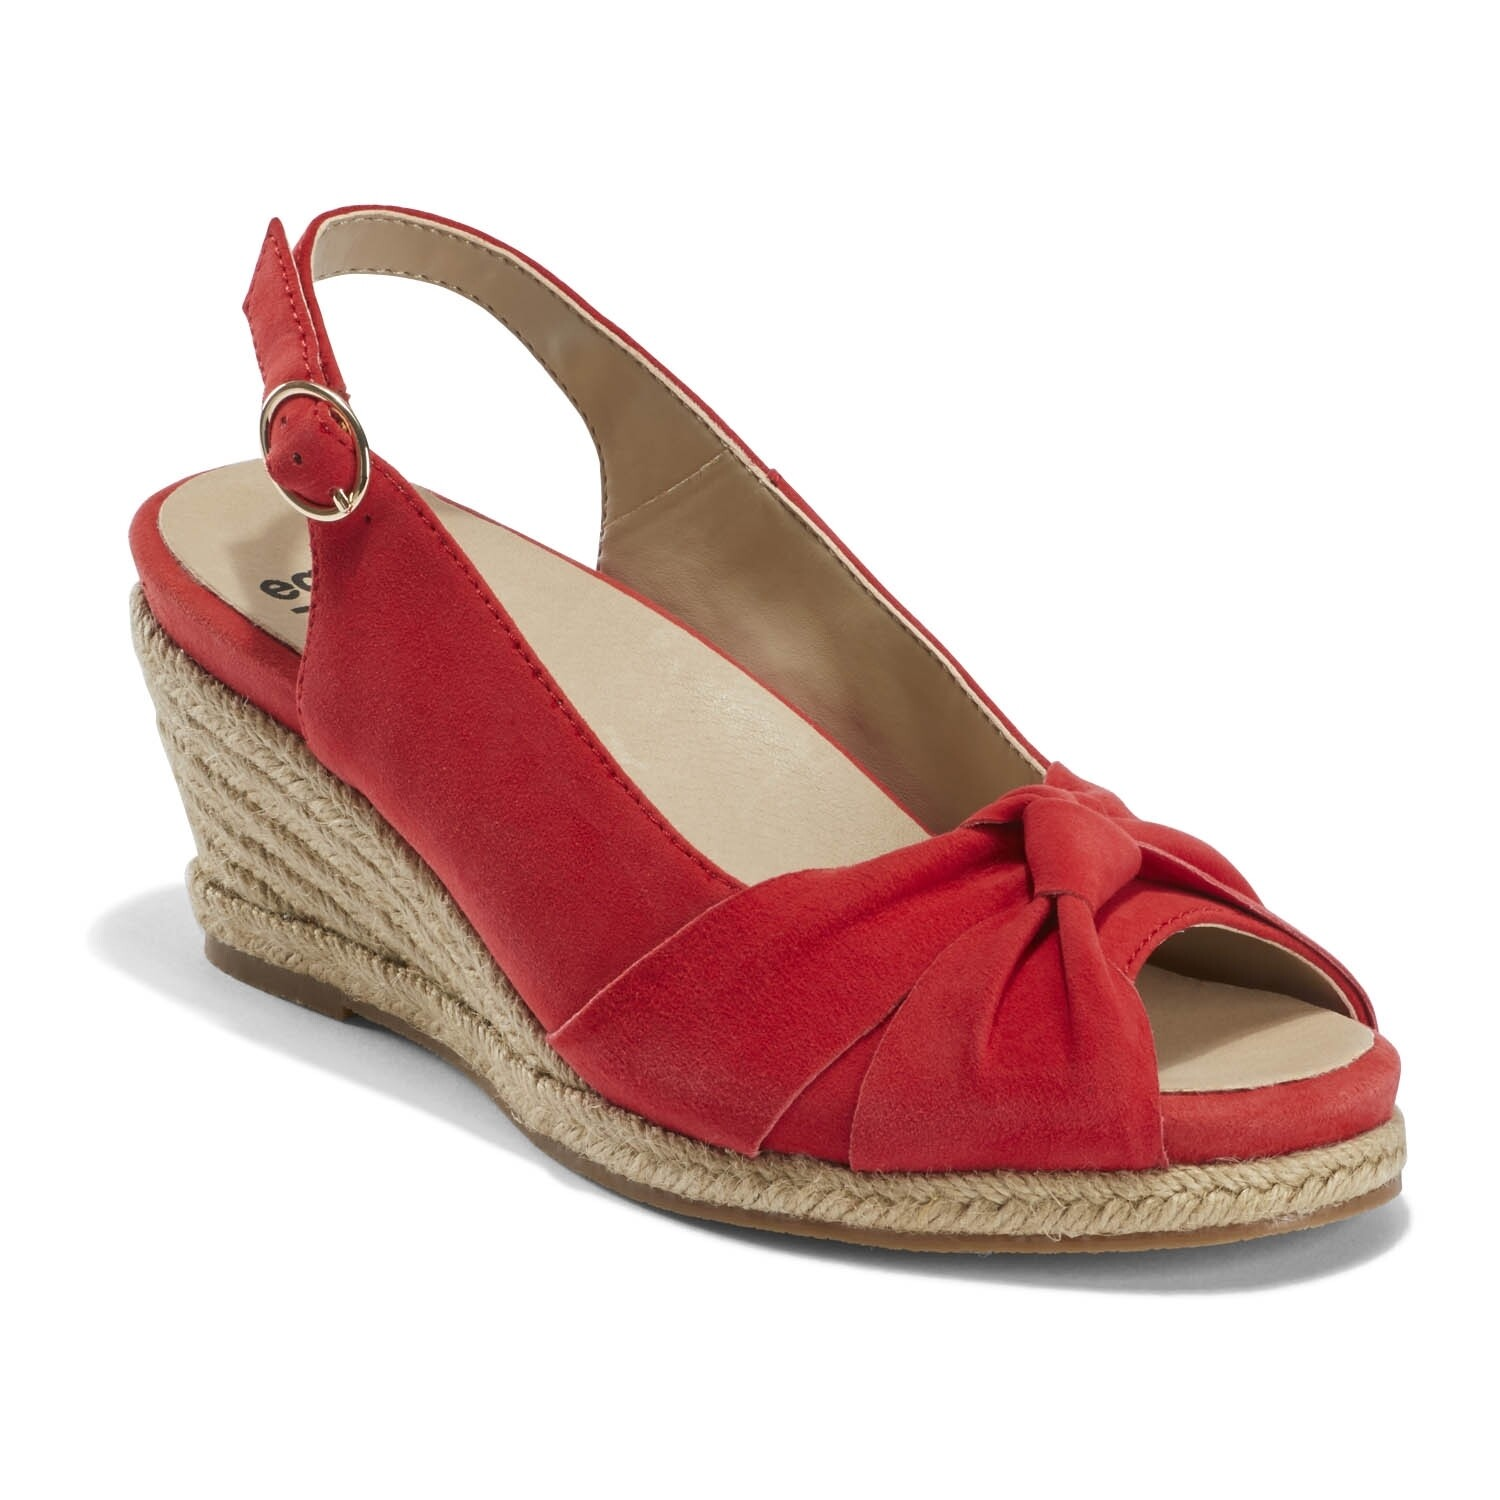 FINAL SALE Thara Bermuda Spicy Red WAS $125